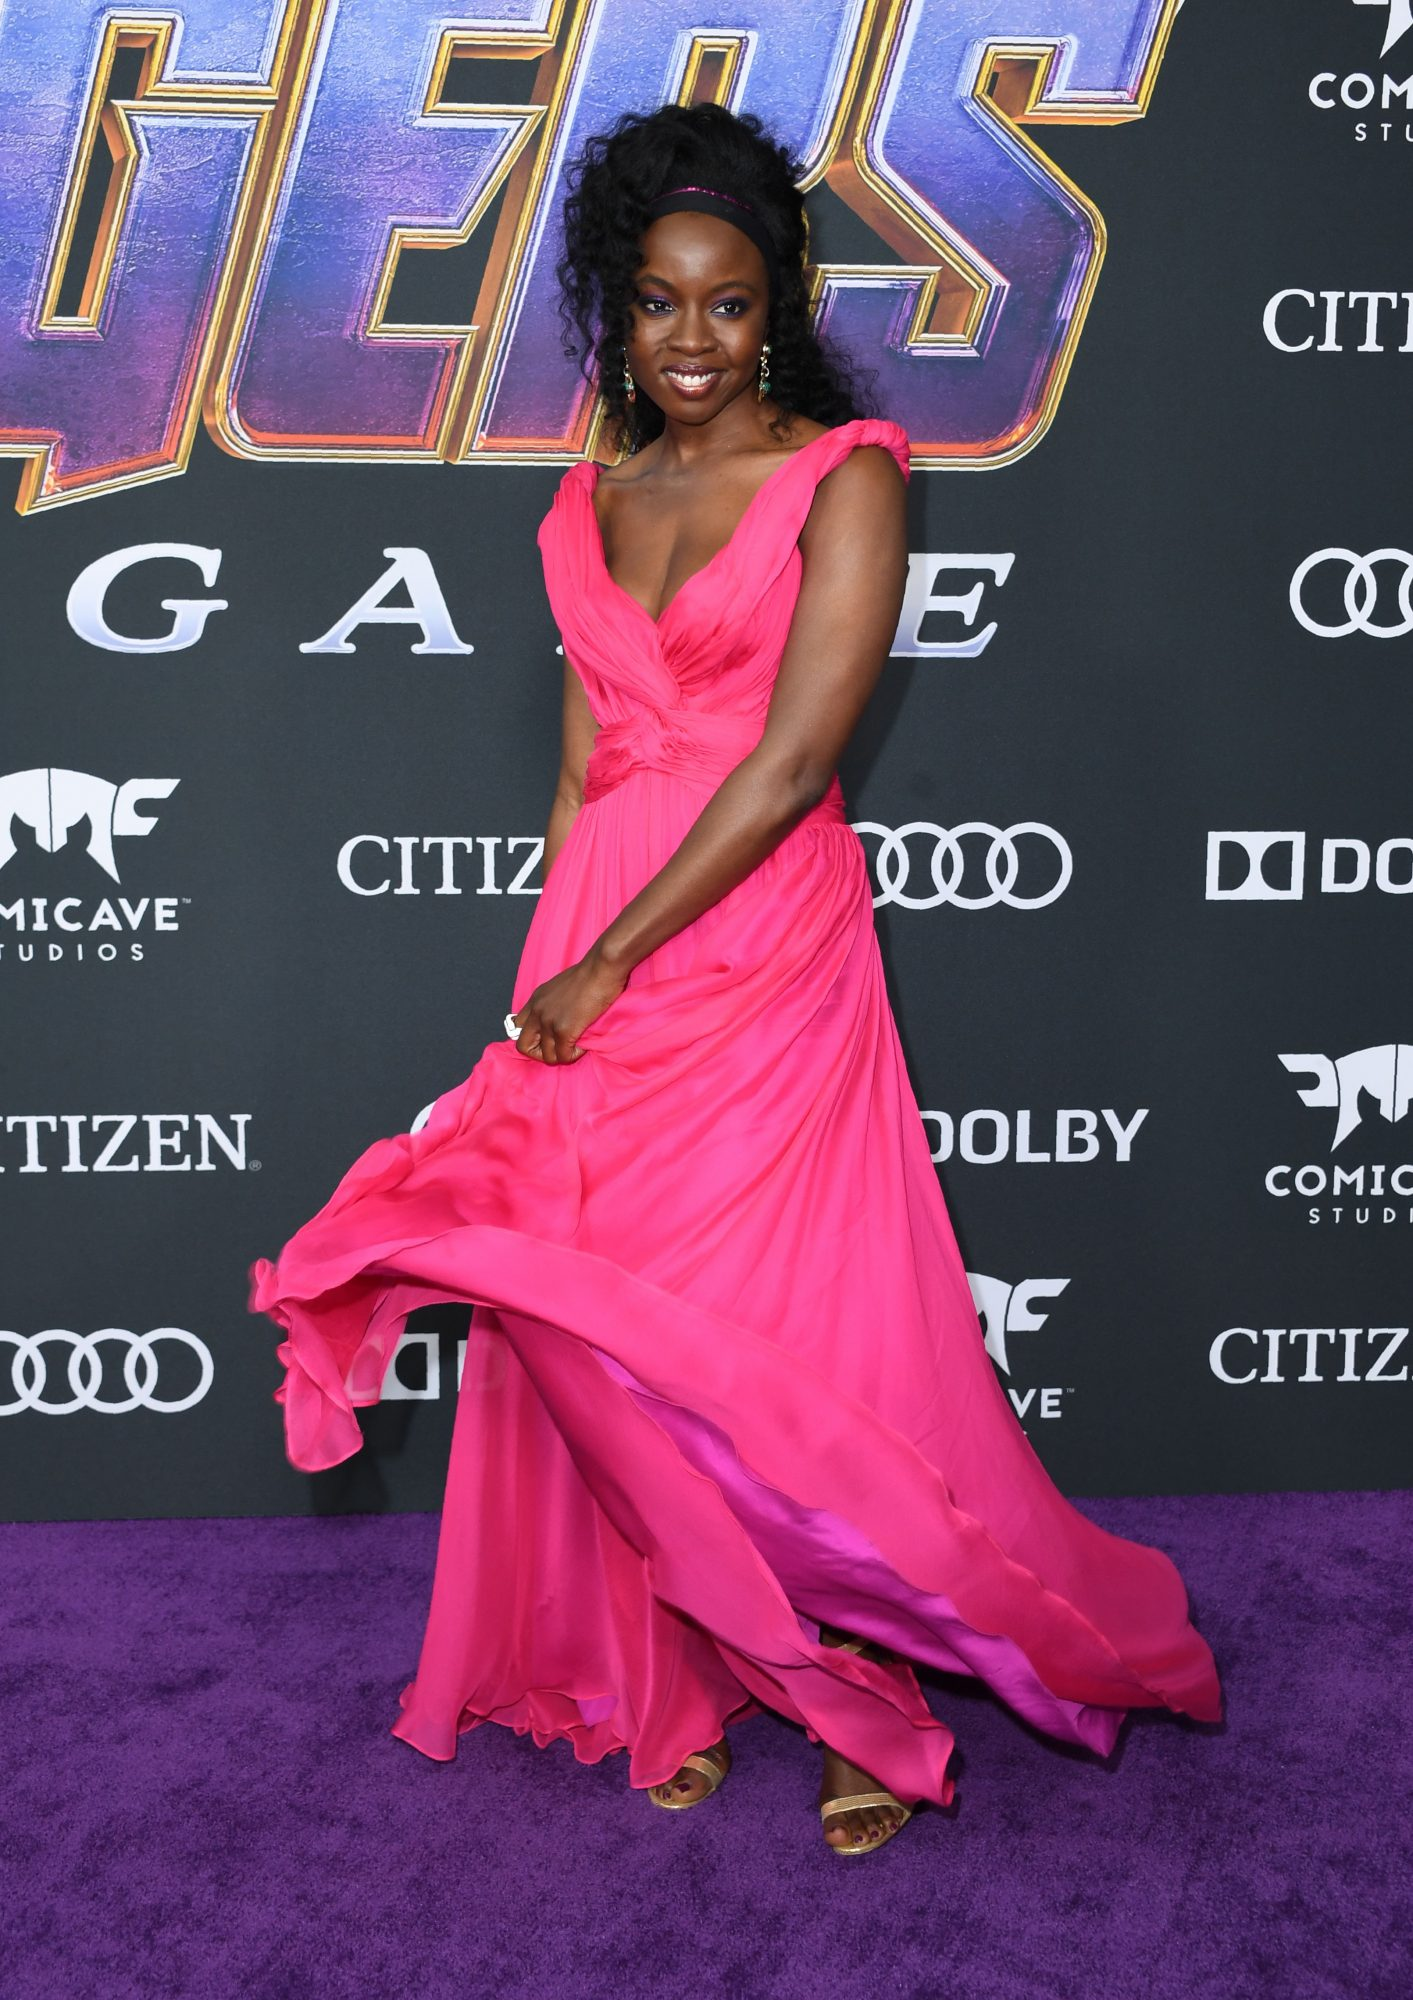 """US actress Danai Gurira arrives for the World premiere of Marvel Studios' """"Avengers: Endgame"""" at the Los Angeles Convention Center on April 22, 2019 in Los Angeles. (Photo by VALERIE MACON/AFP/Getty Images)"""